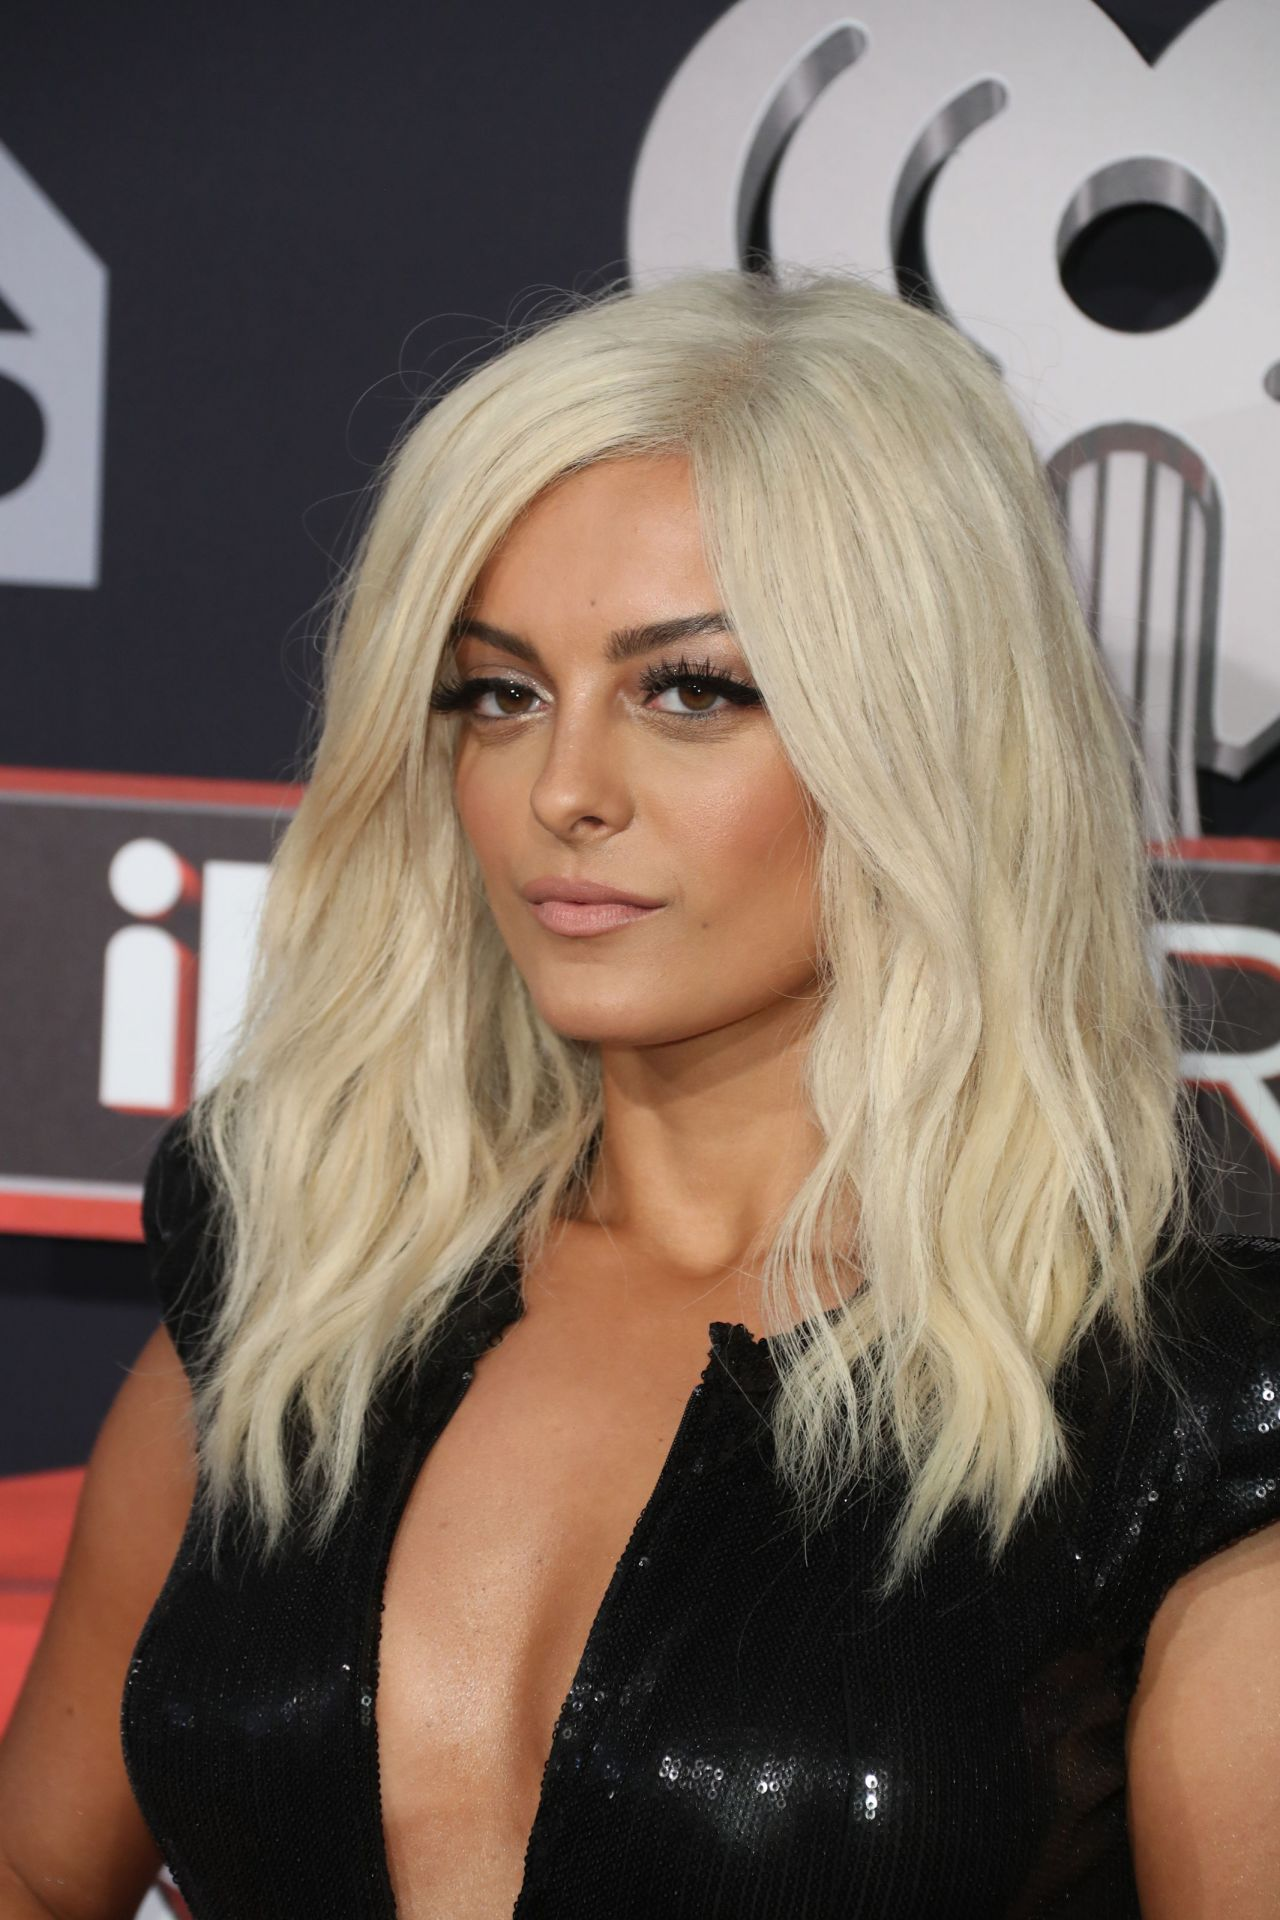 Bebe Rexha at iHeartRadio Music Awards in Los Angeles A 3 ...